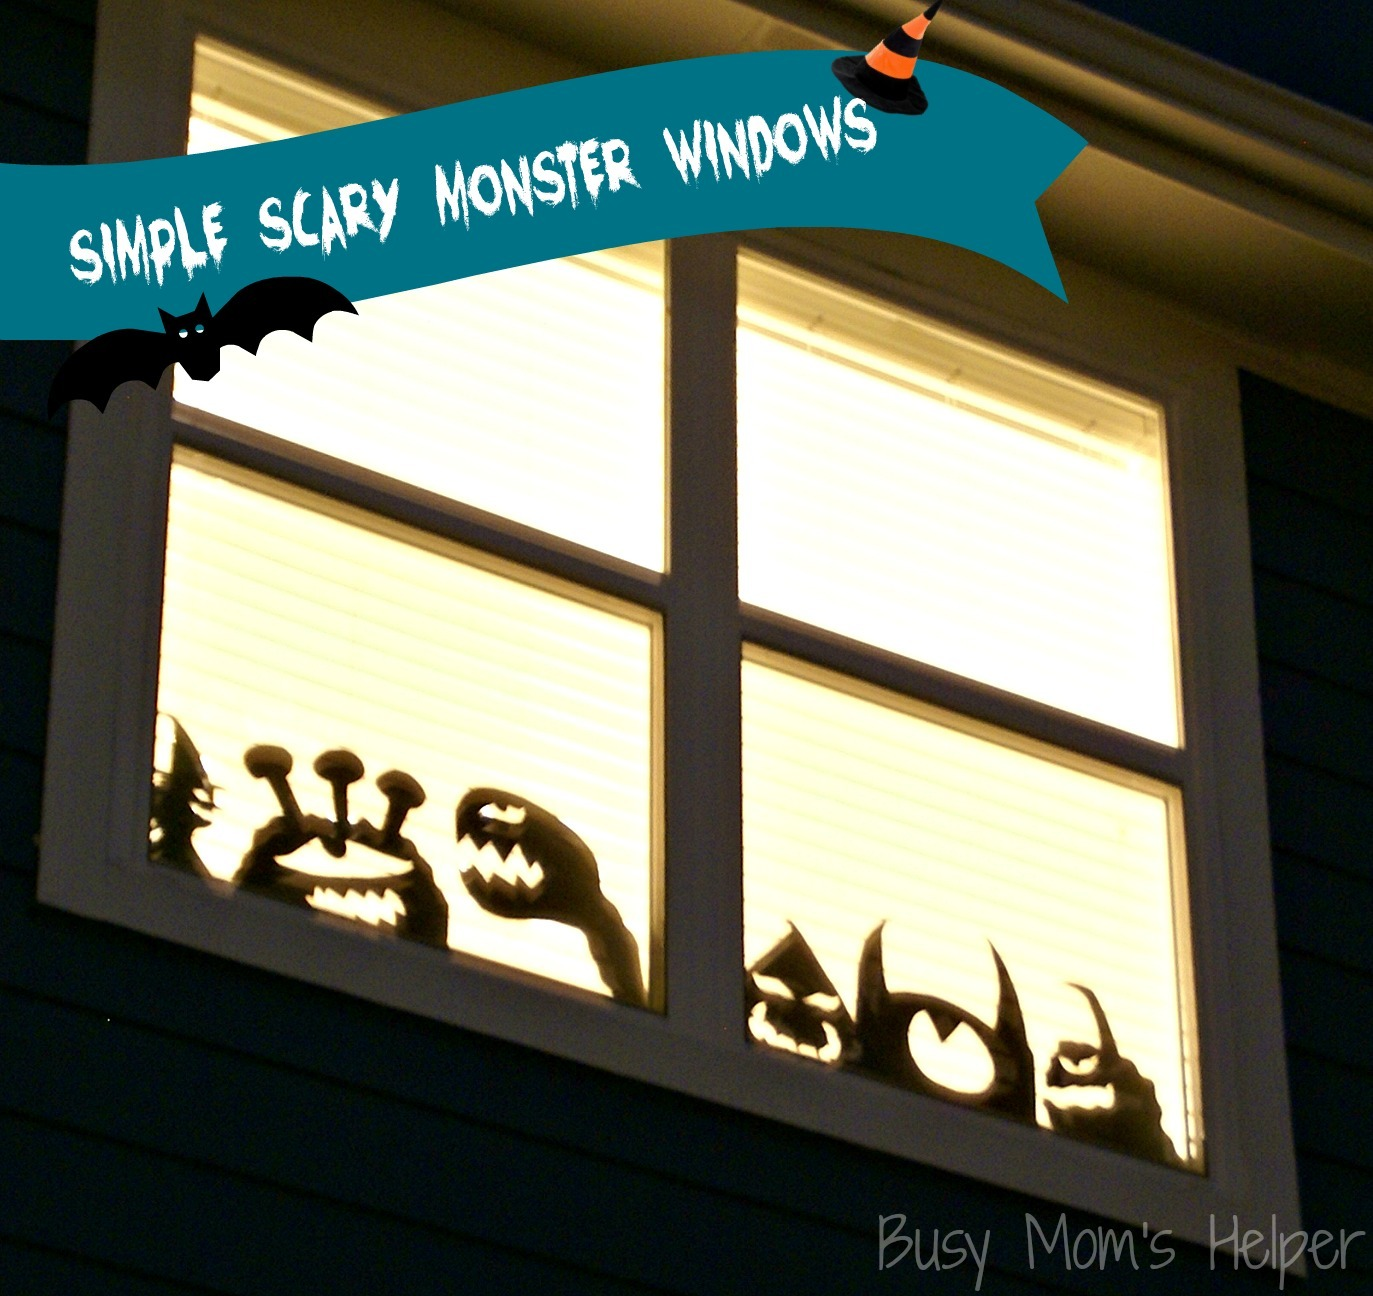 Simple Scary Monster Windows / Busy Mom's Helper